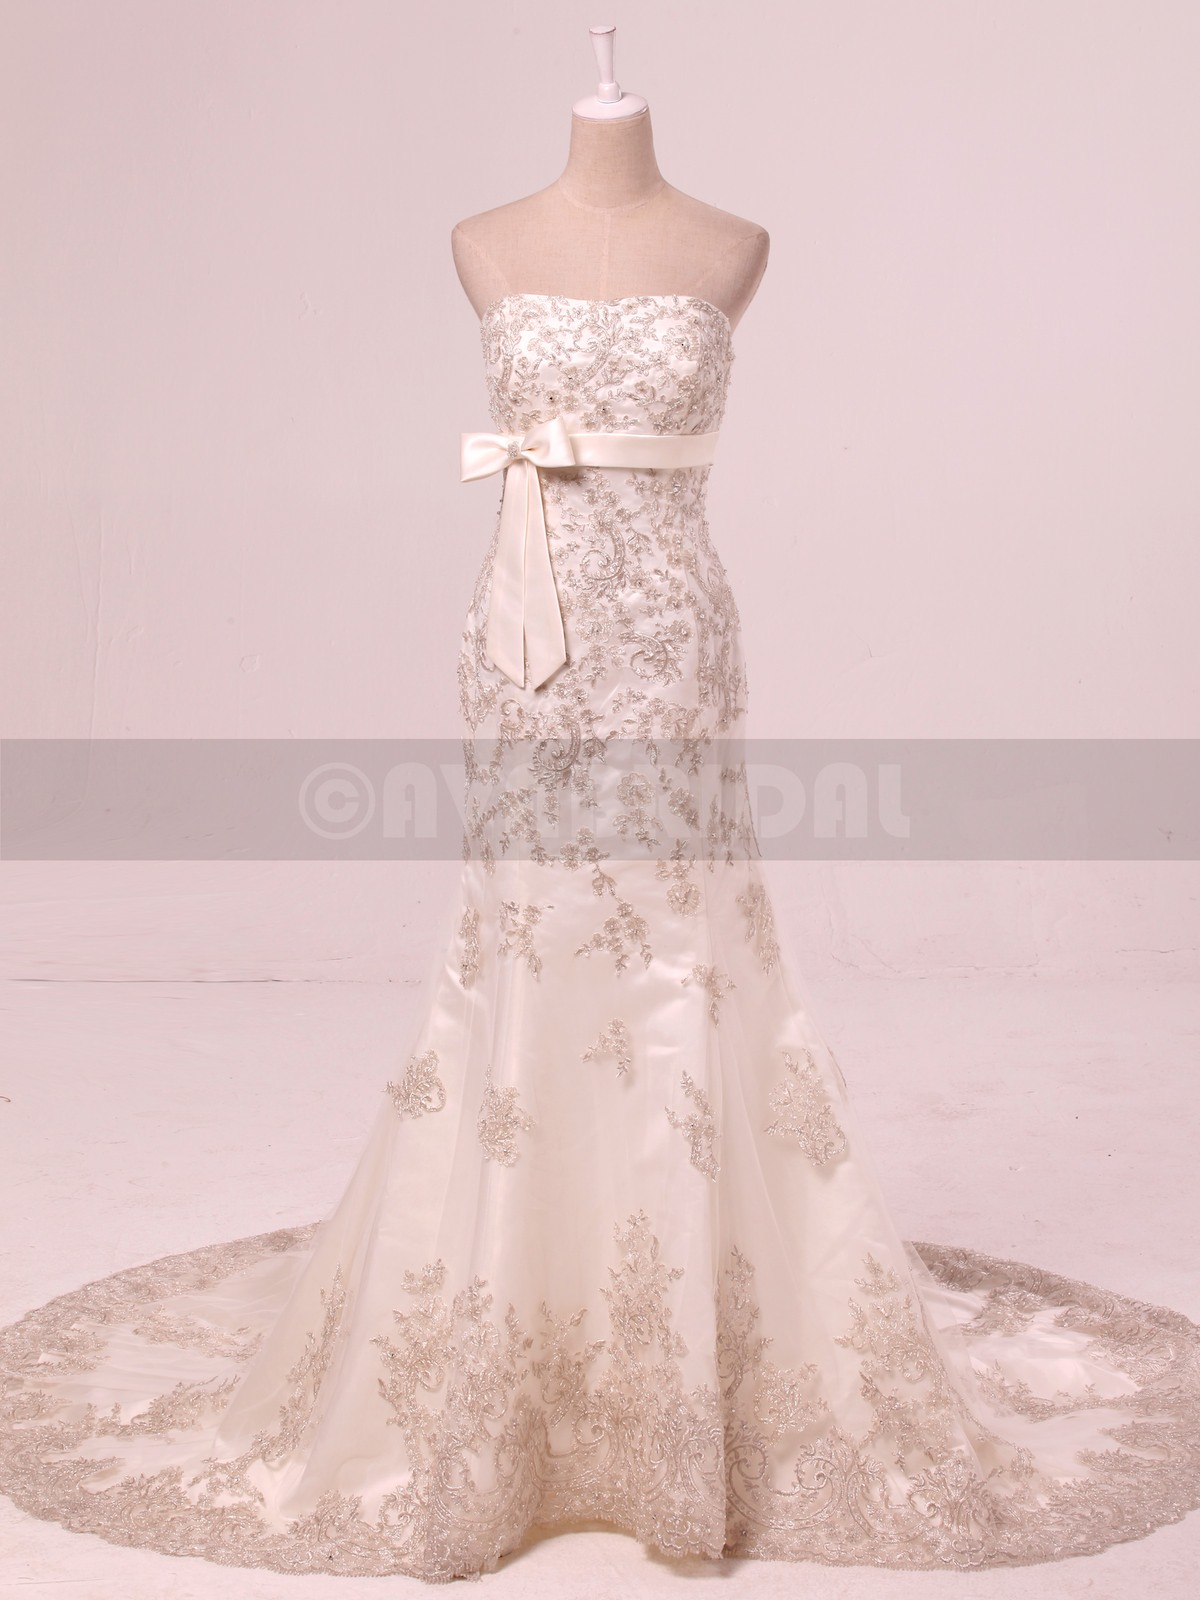 Lace Wedding Dress - Beverley - Front